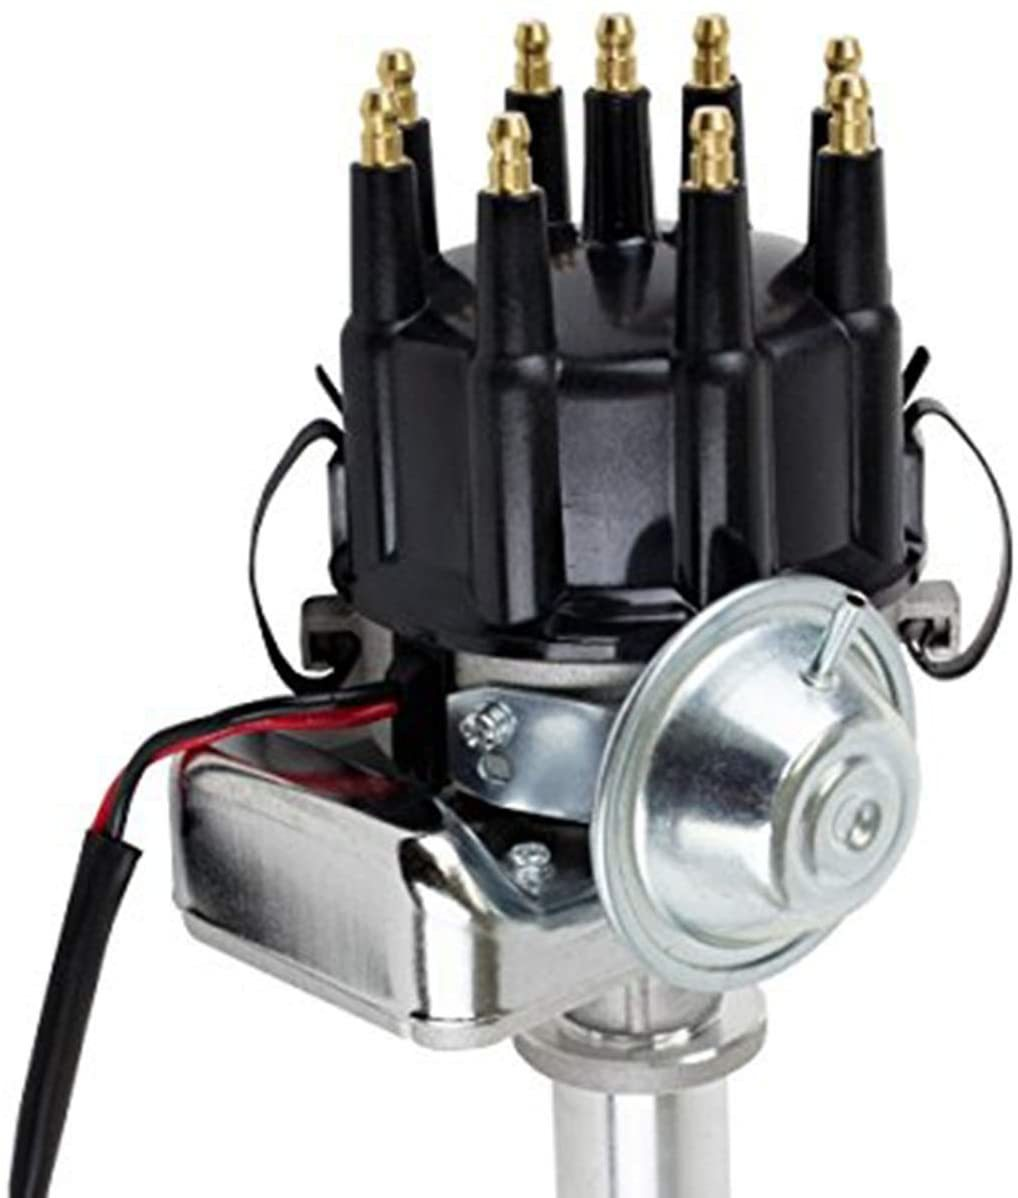 A-Team Performance R2R6701BK Ready-To-Run Electronic Distributor with Black Cap